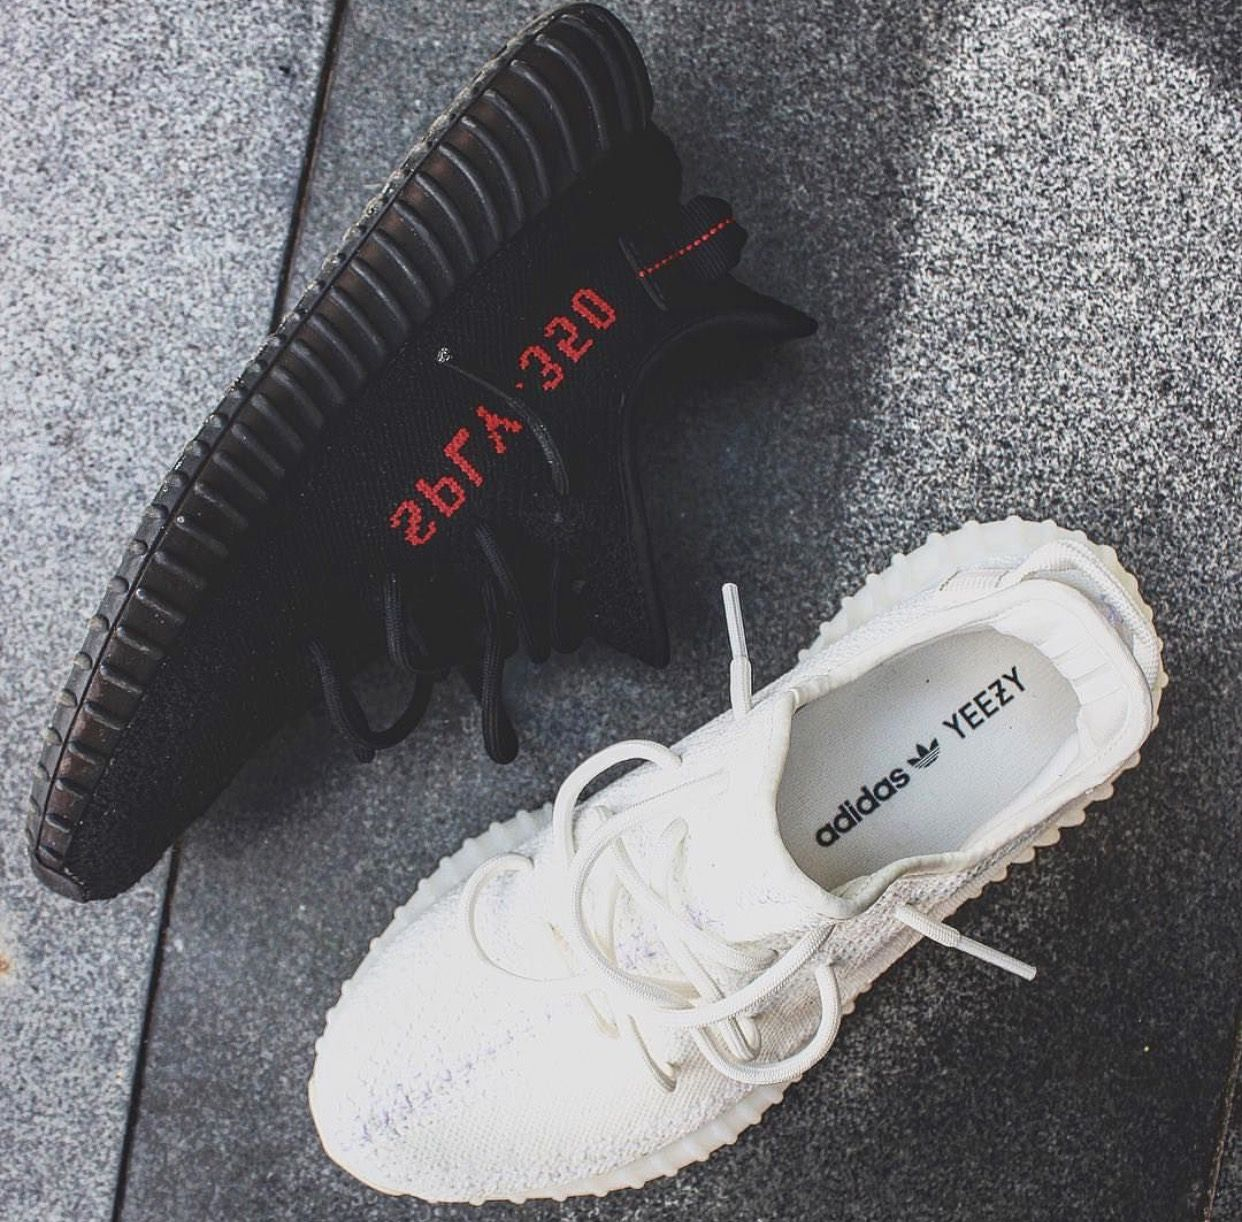 Adidas Yeezy Boost 350 V2 Bred Cream Whites With Images